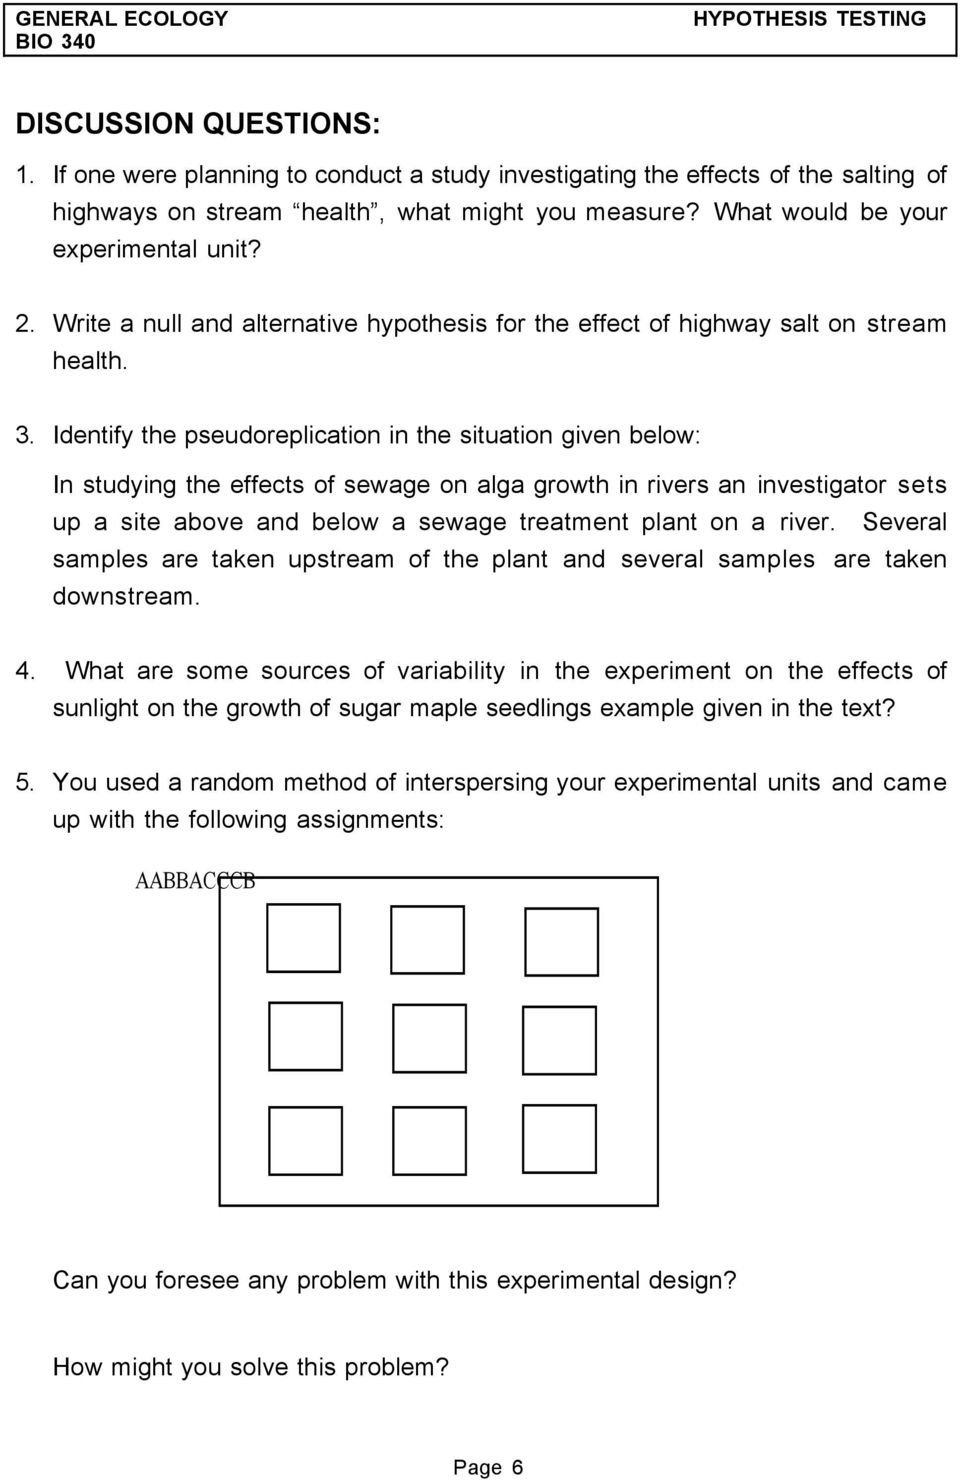 Identify the pseudoreplication in the situation given below: In studying the effects of sewage on alga growth in rivers an investigator sets up a site above and below a sewage treatment plant on a